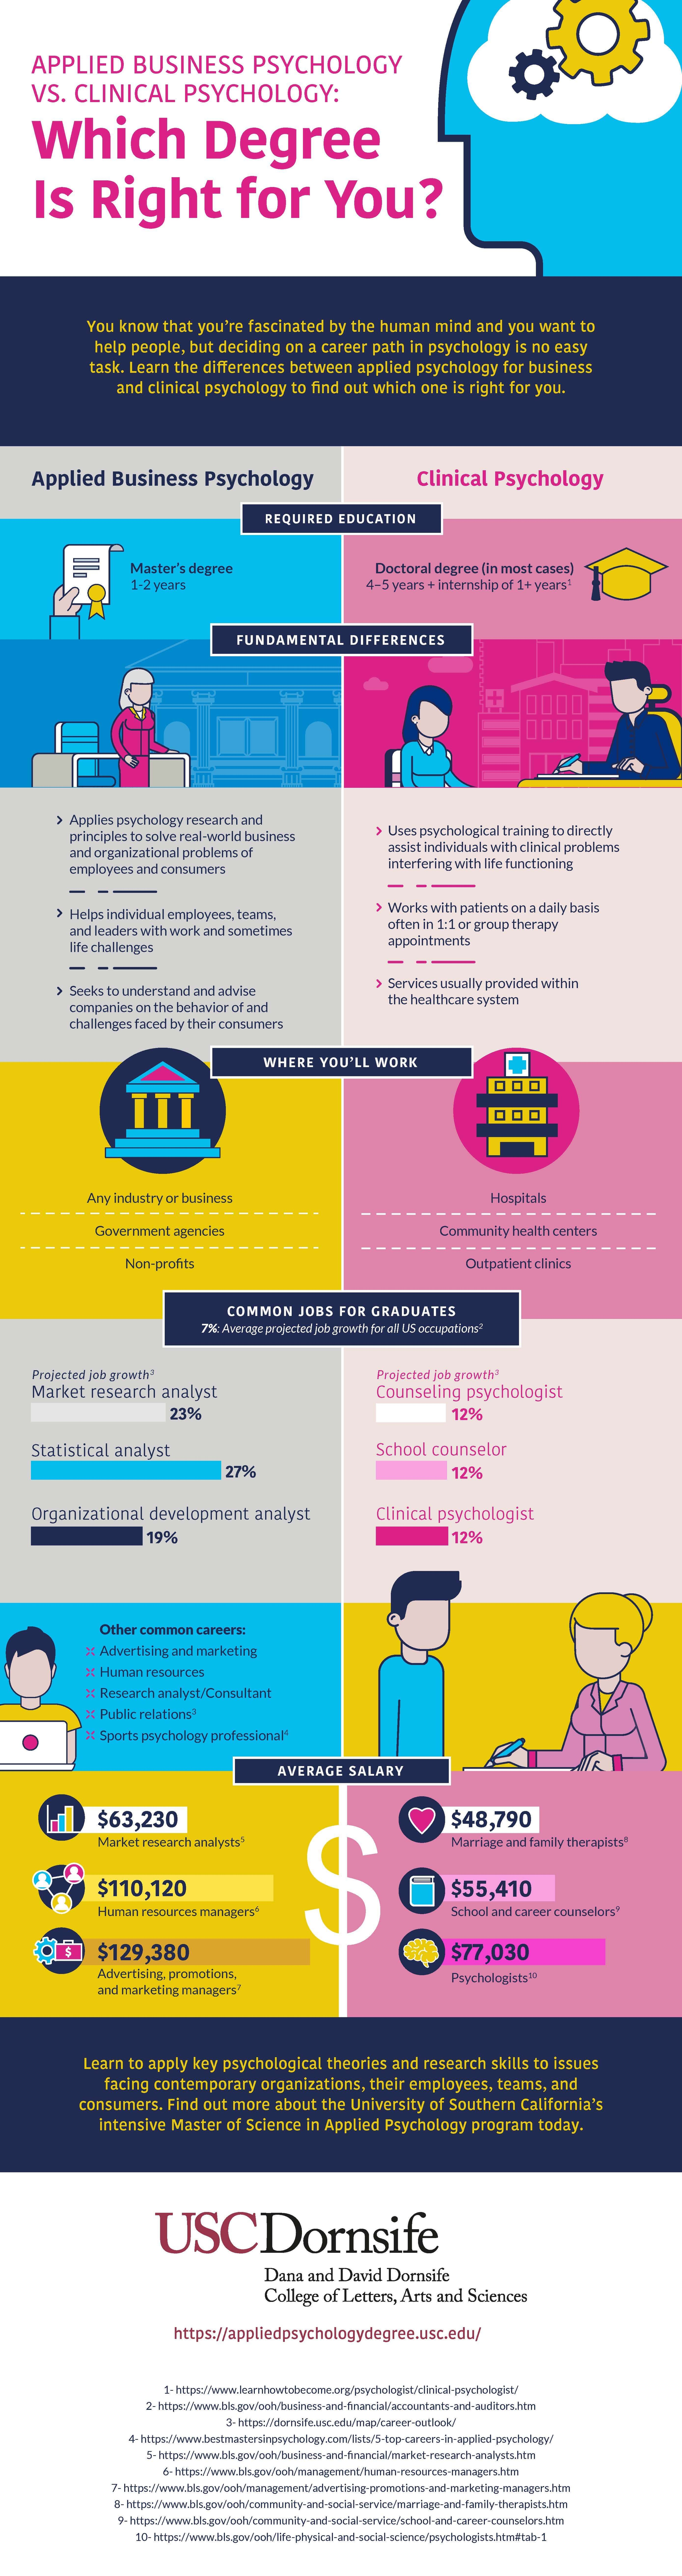 An infographic about the differences between applied and clinical psychology by the USC online Master of Science in Applied Psychology program.